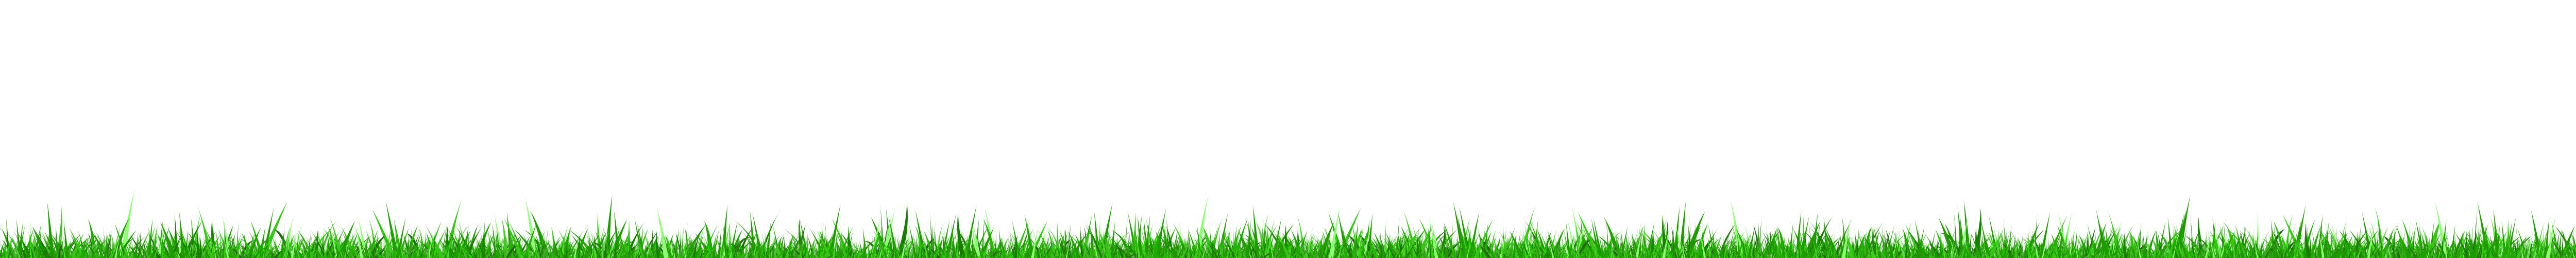 Grass background png. Psd onlygfx com free